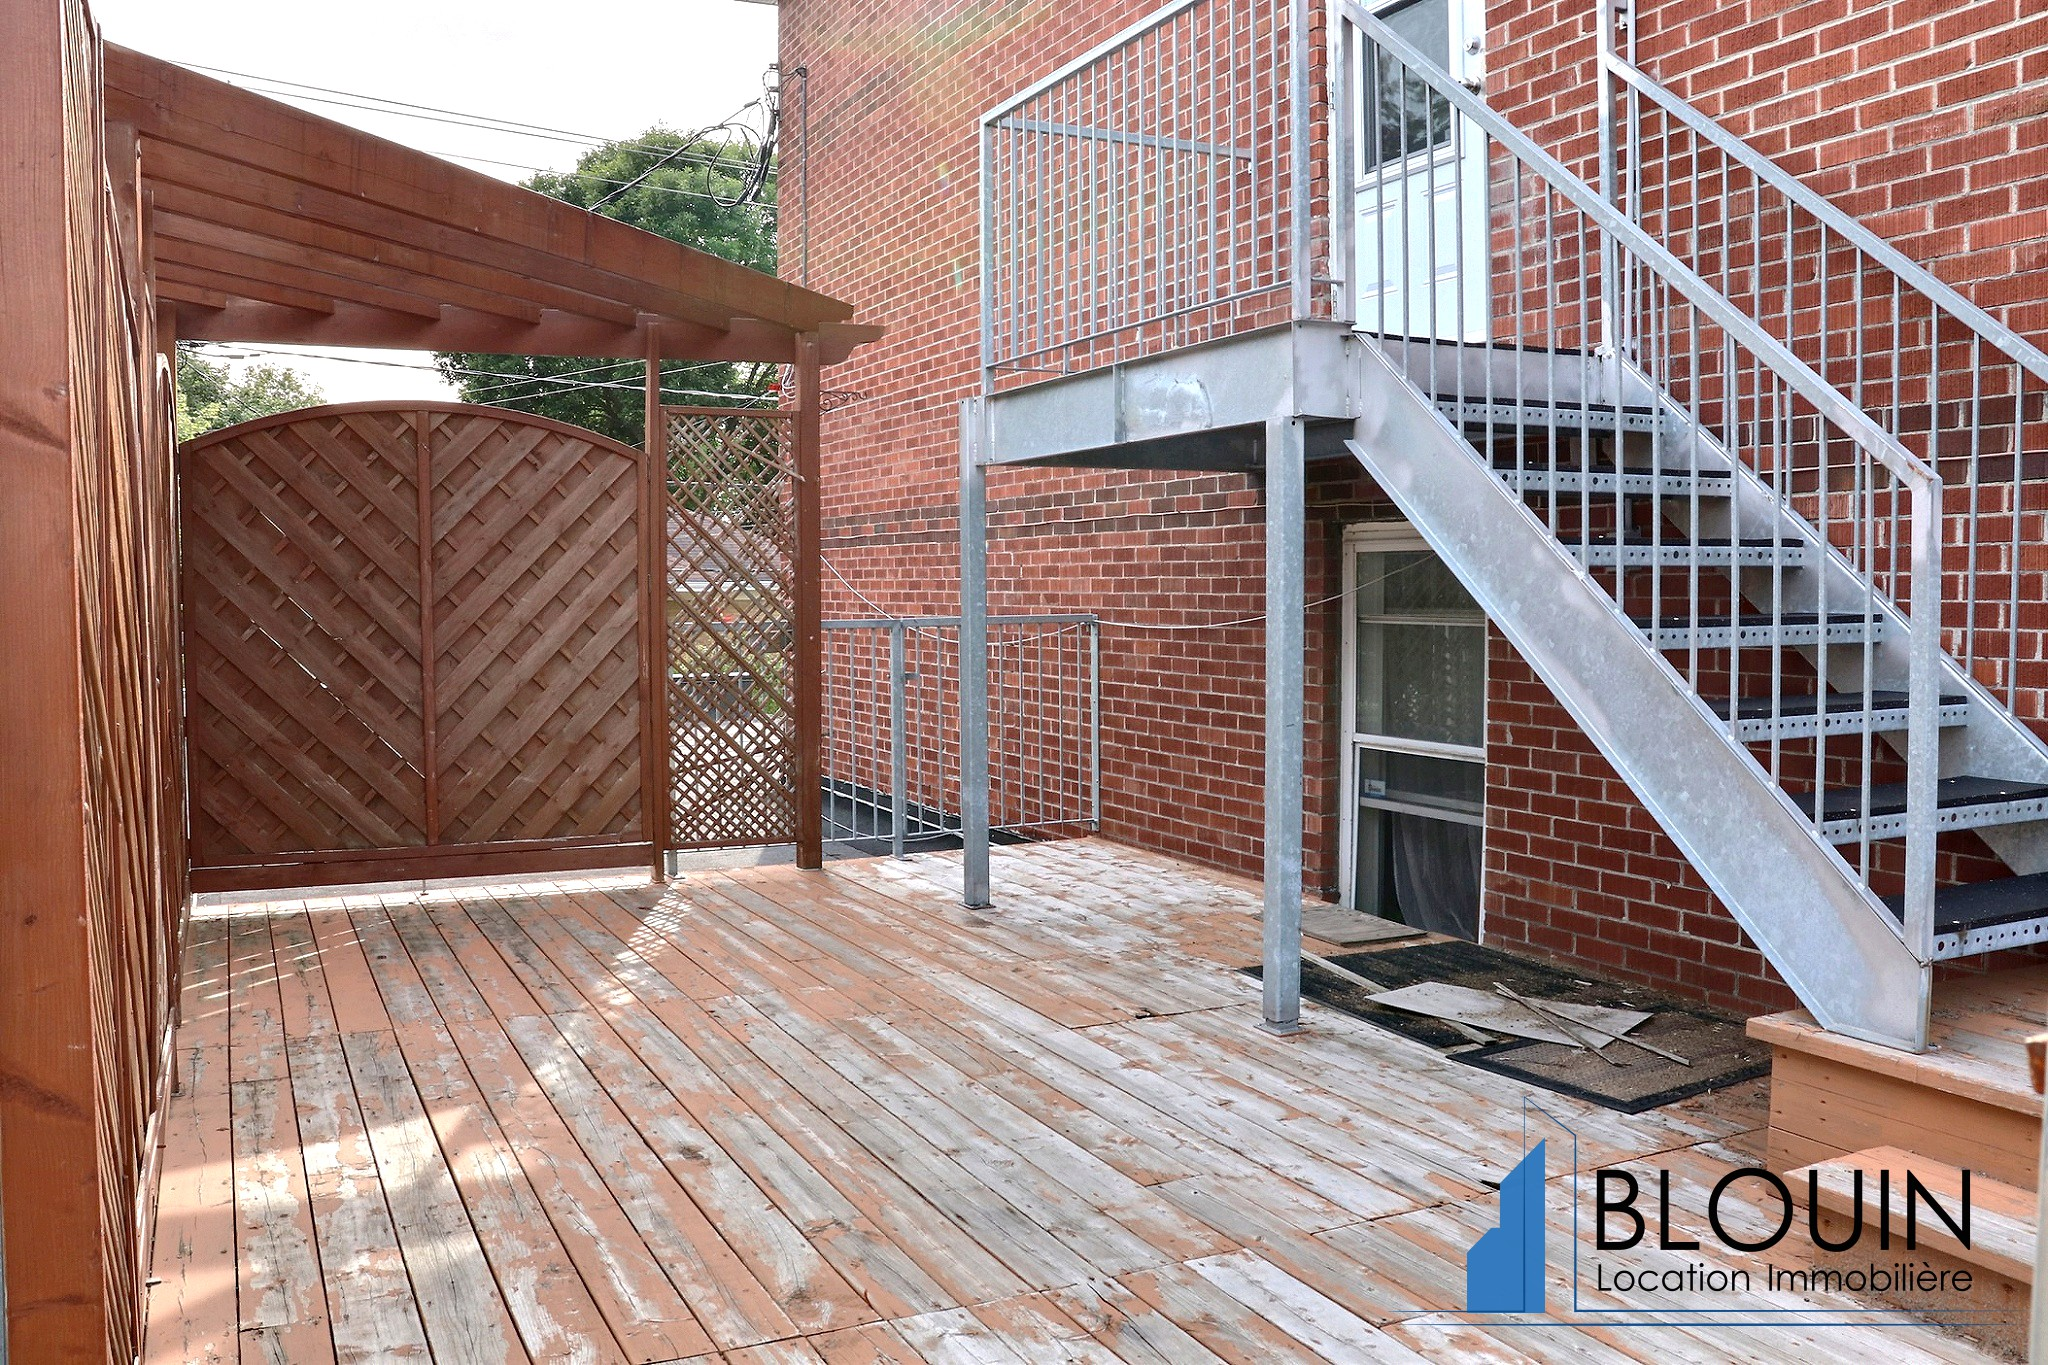 Photo 13 : Grand 4 ½ +, Libre maintenant, Grande terrasse intime, Stationnement inclus